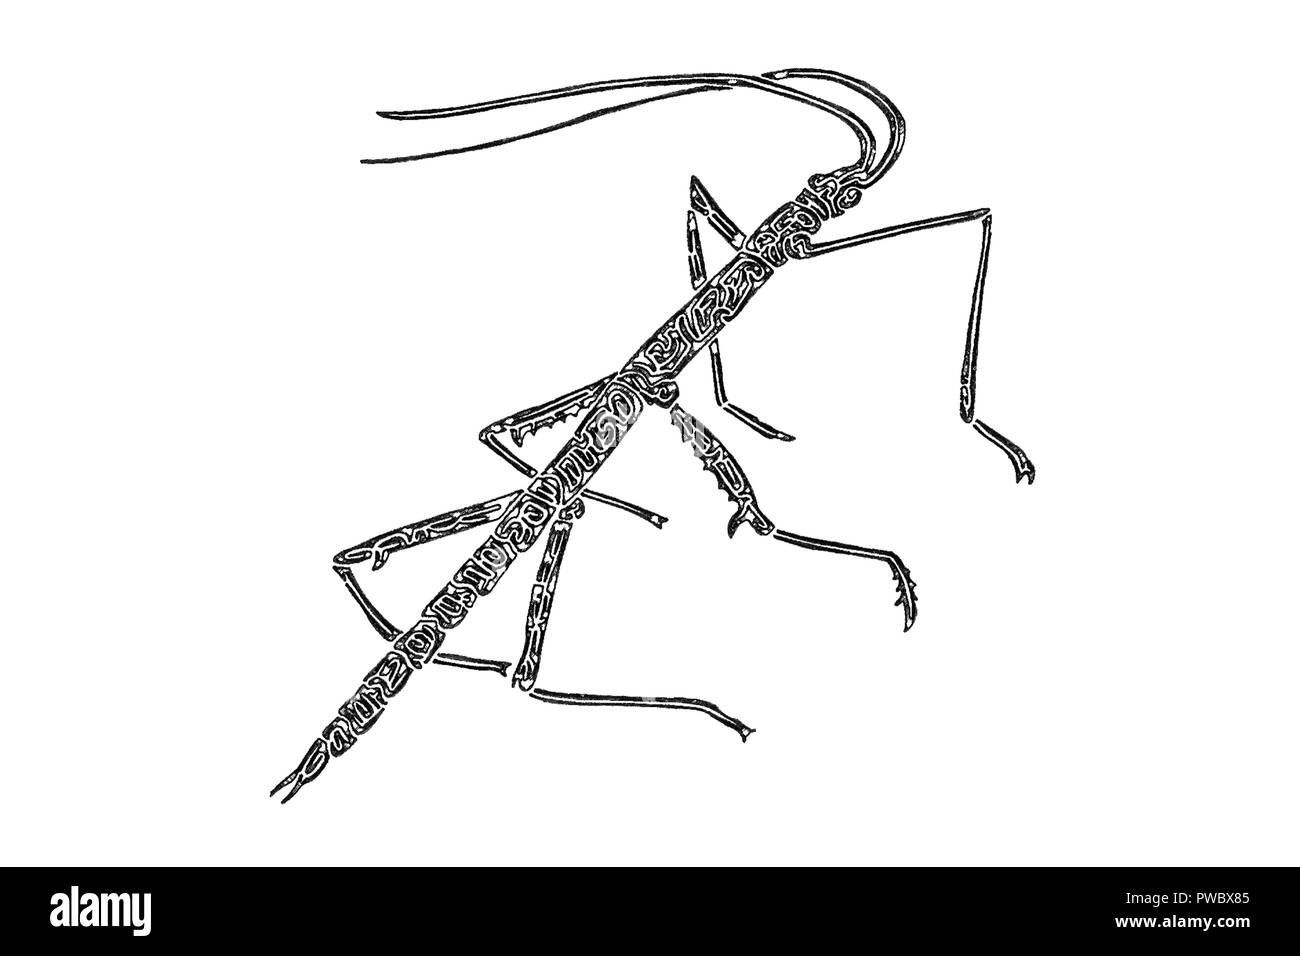 Illustration Of A Walking Stick Insect Black And White Digital